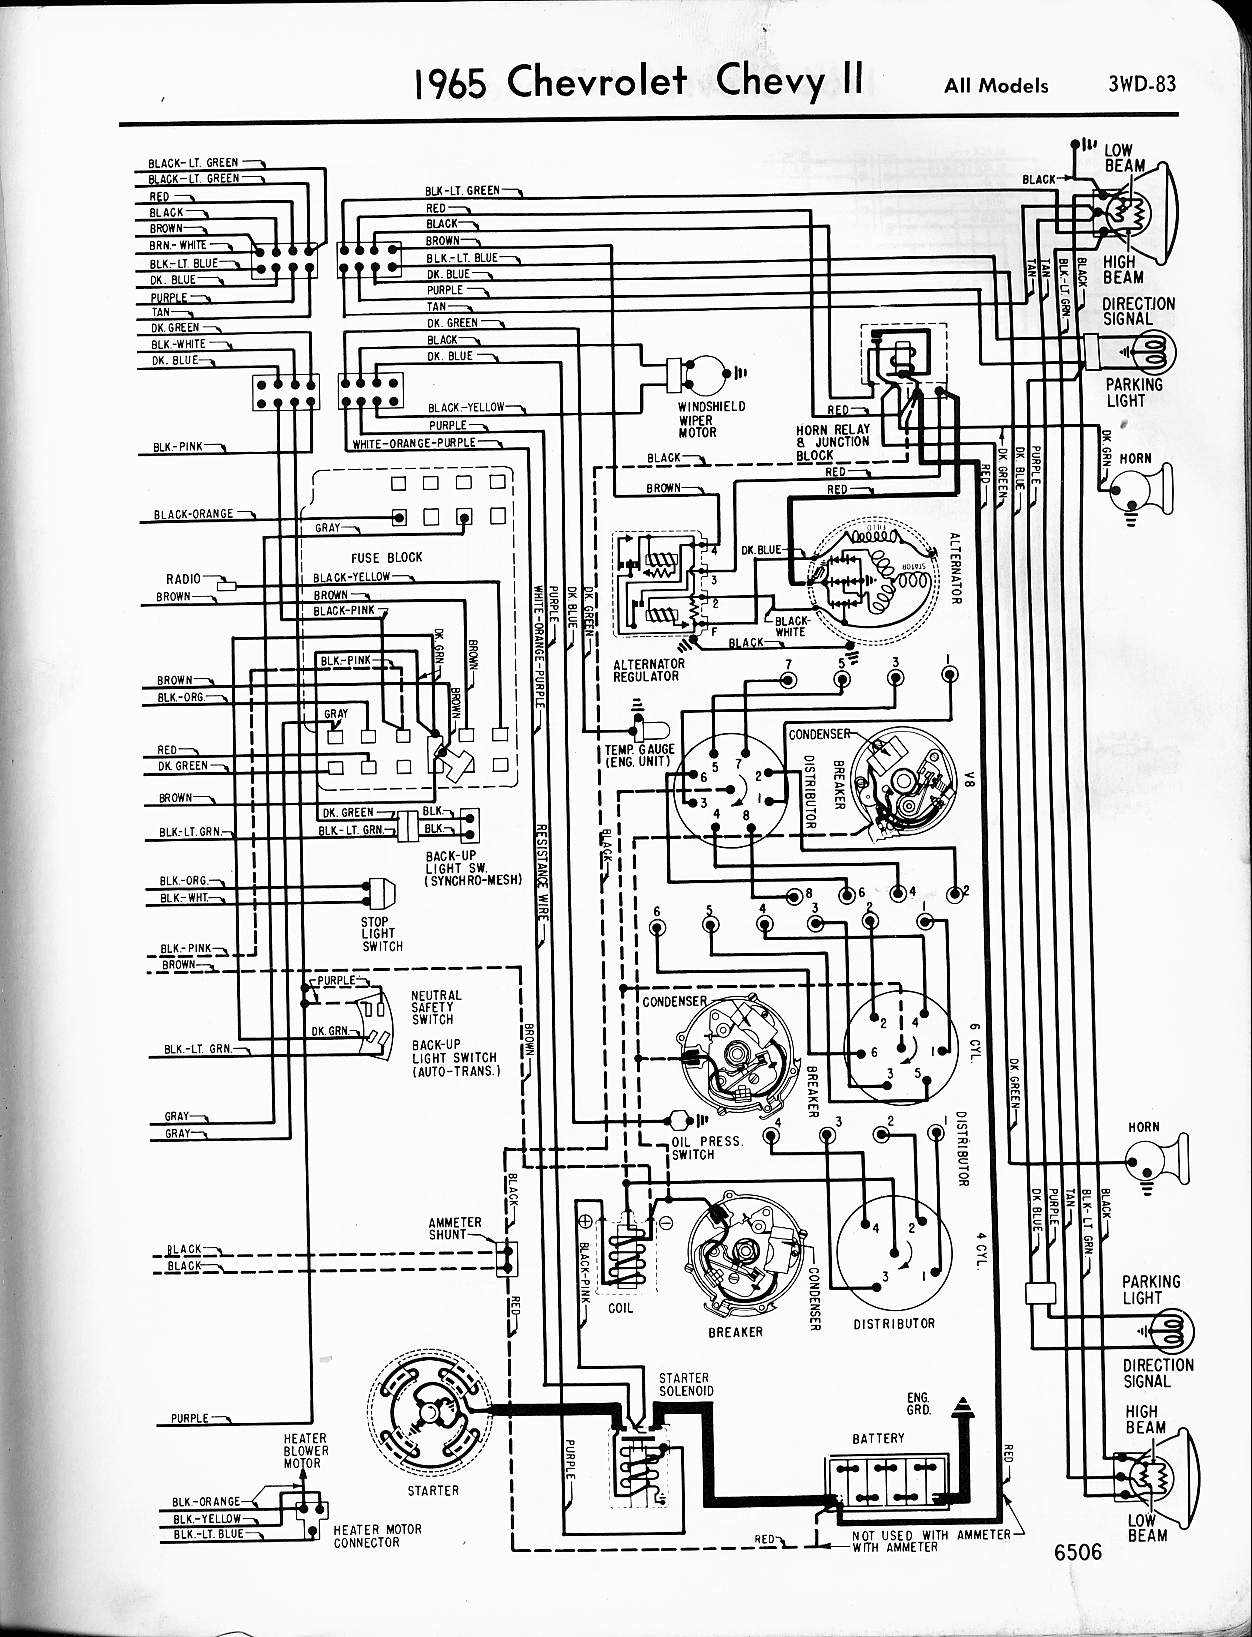 1963 Nova Wiring Diagram - Wiring Diagram Dash Jim F Wiring Diagram on